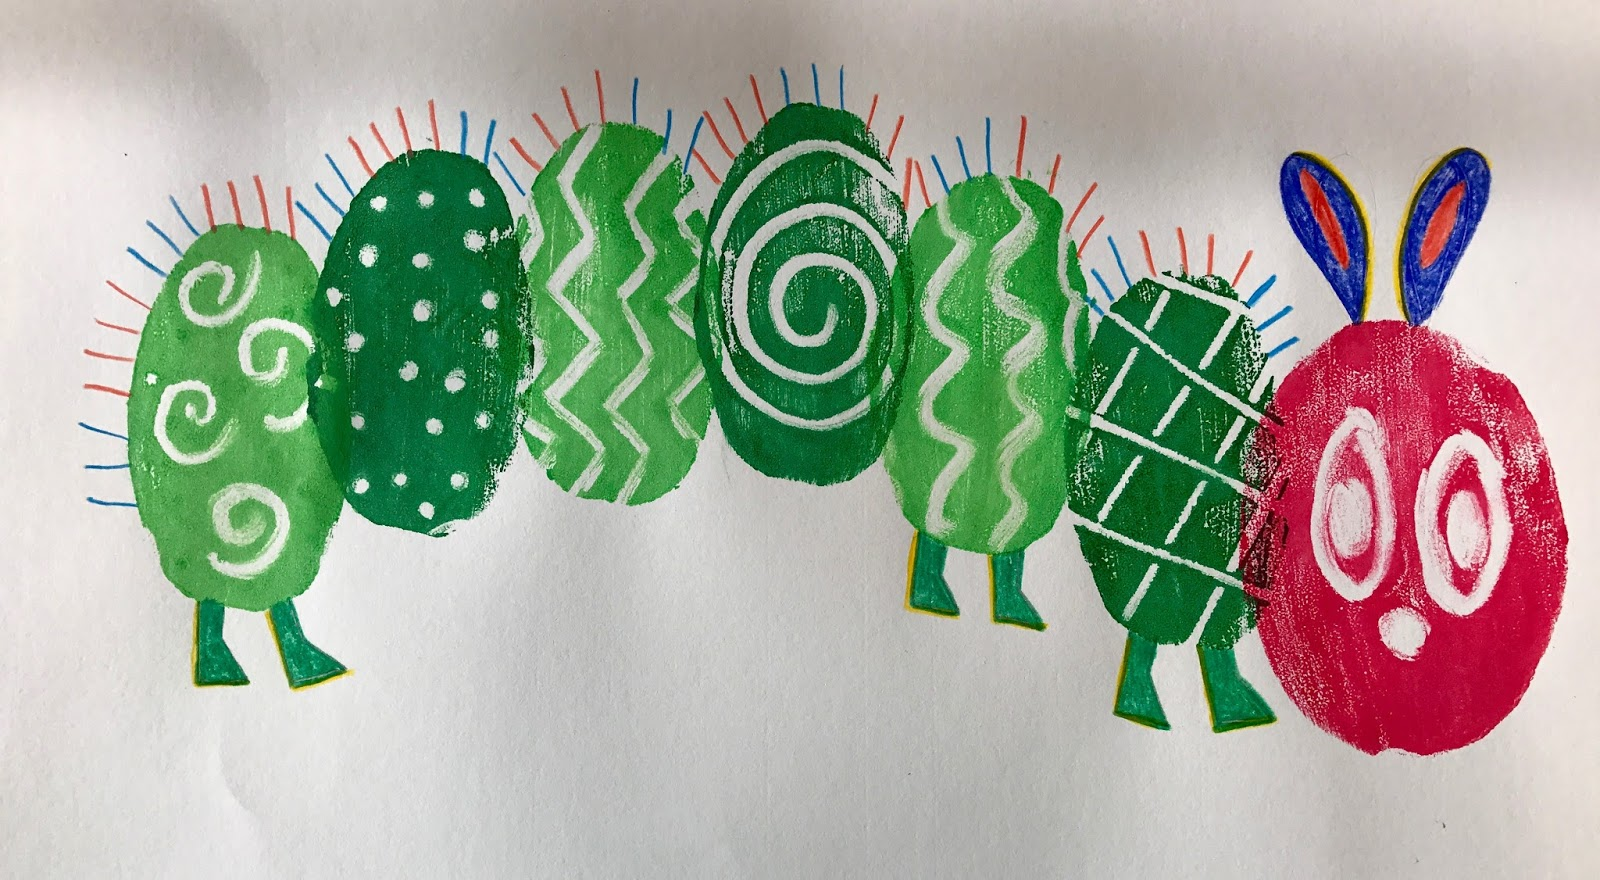 Kathys AngelNik Designs Amp Art Project Ideas The Very Hungry Caterpillar By Eric Carle